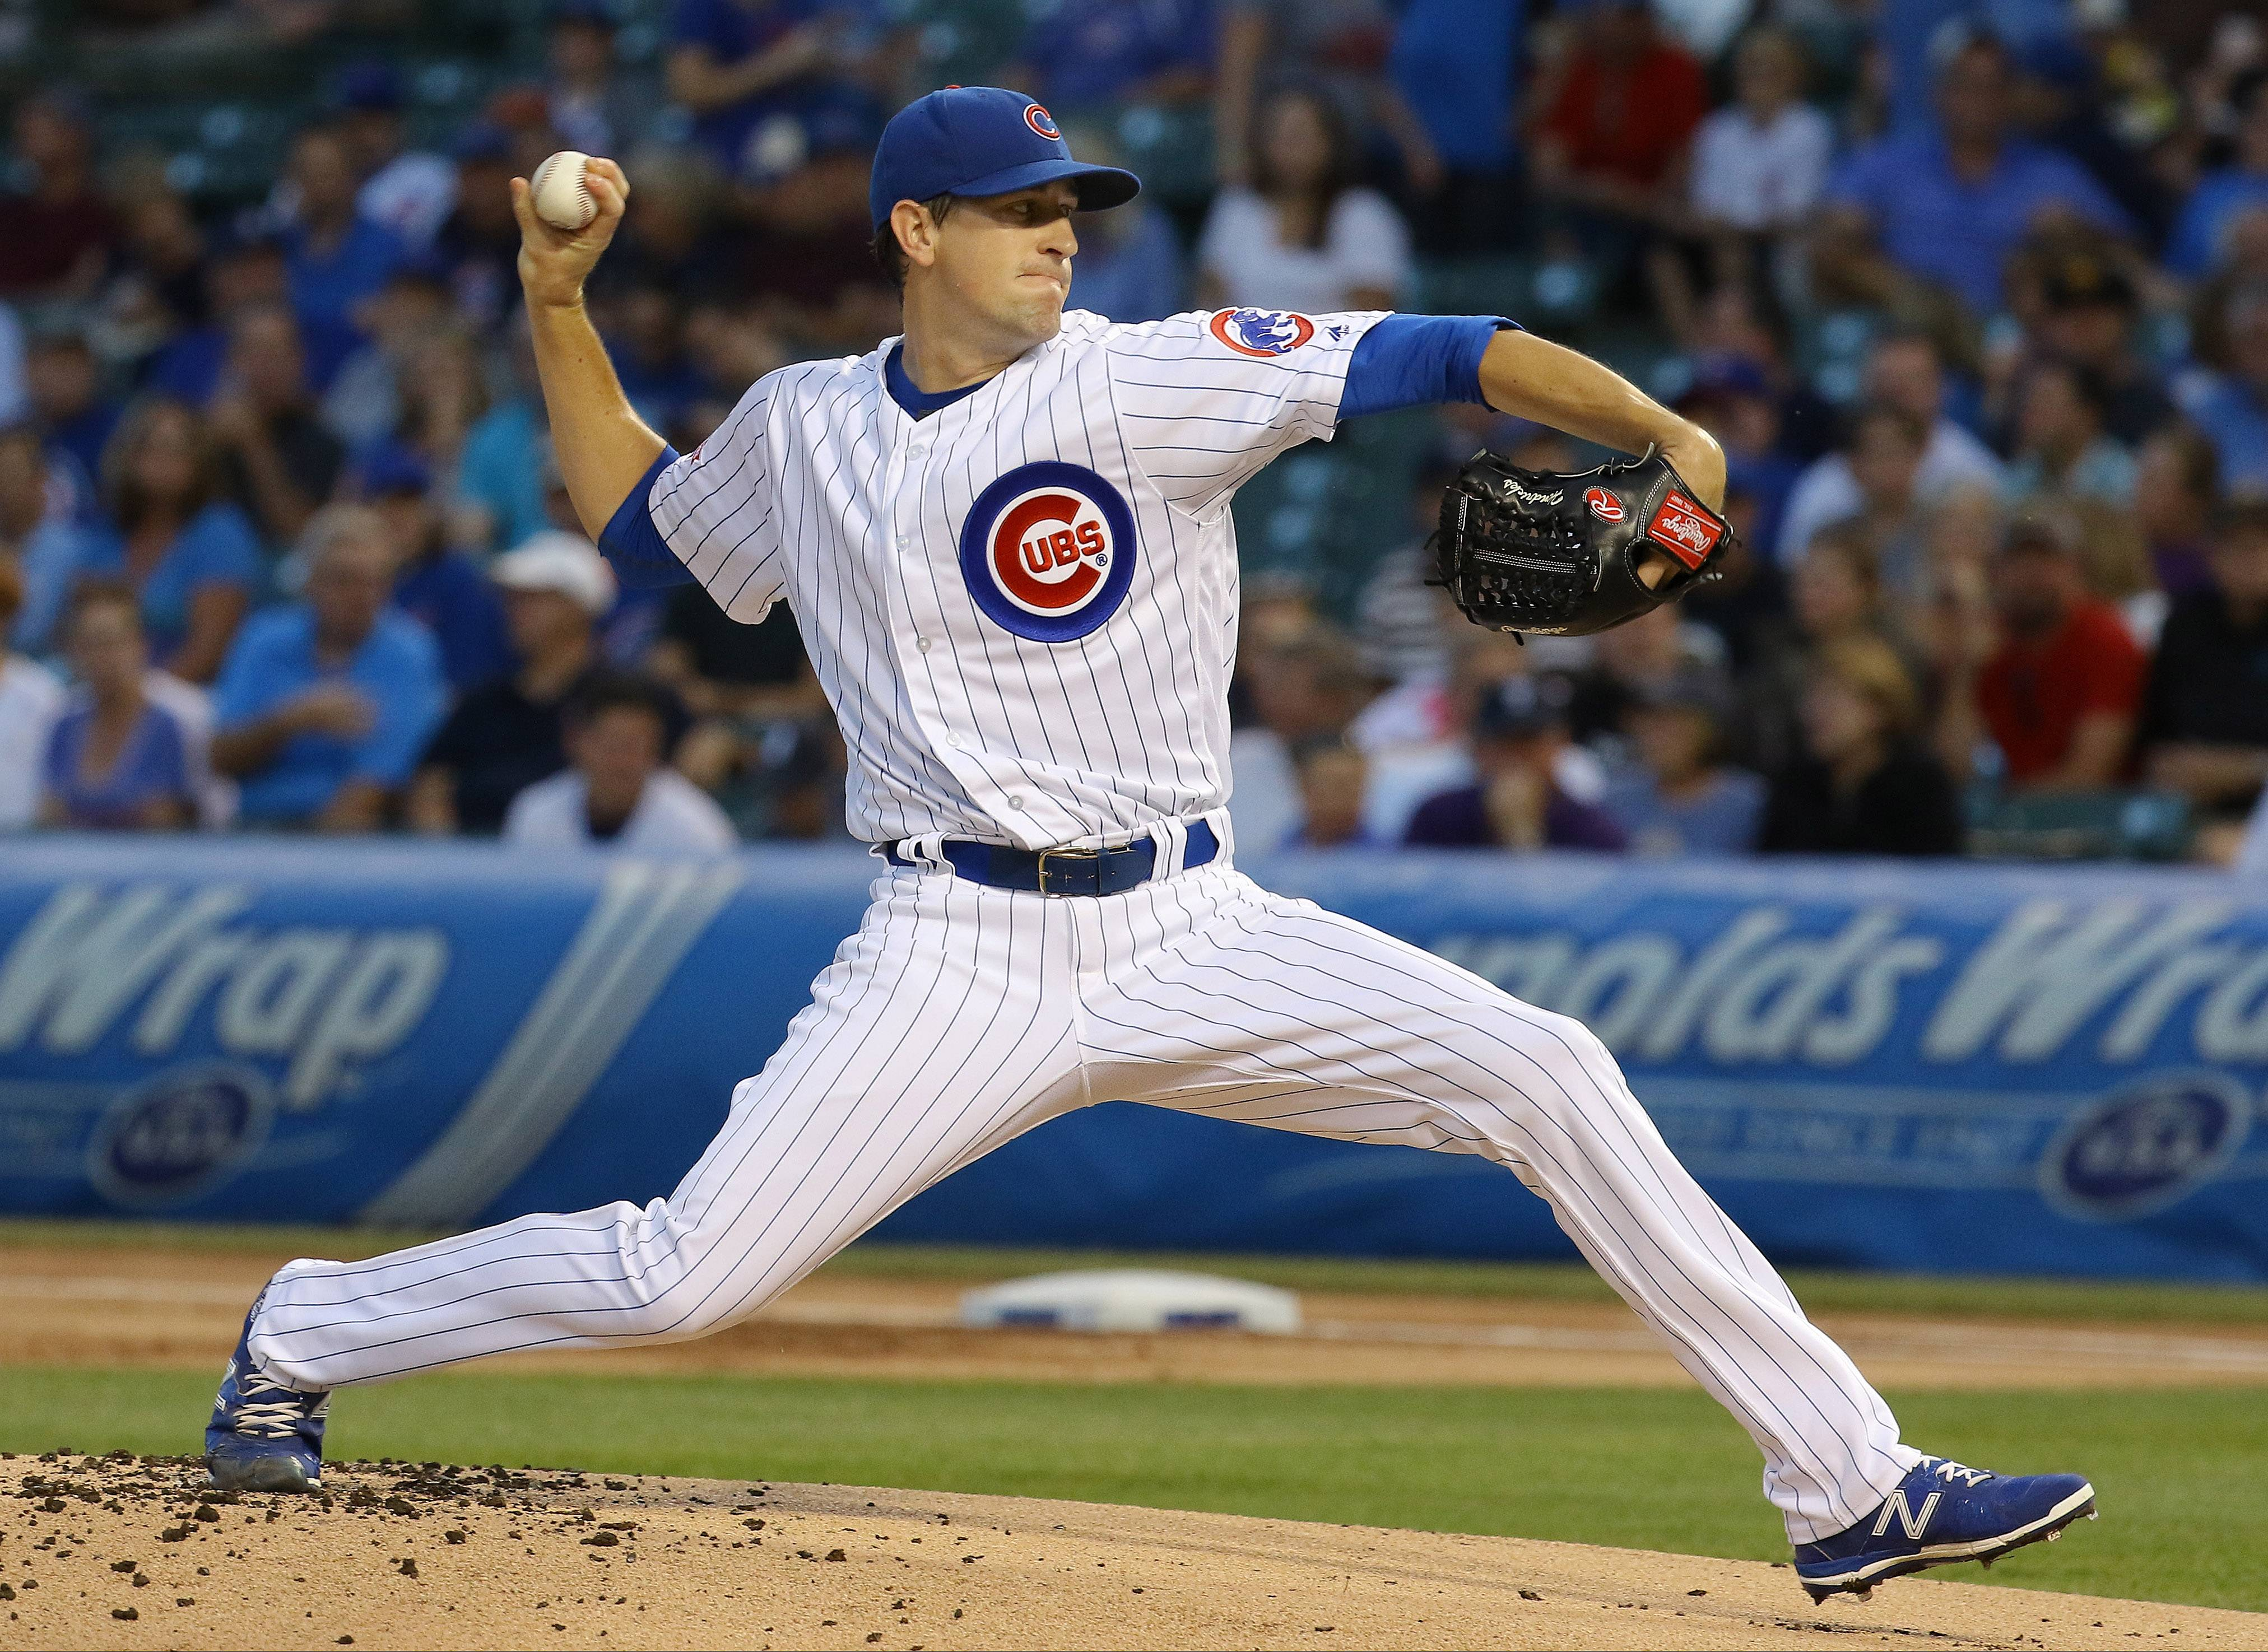 Chicago Cubs right-hander Kyle Hendricks continued his artistry Tuesday night, working 7 shutout innings against the Pittsburgh Pirates at Wrigley Field.